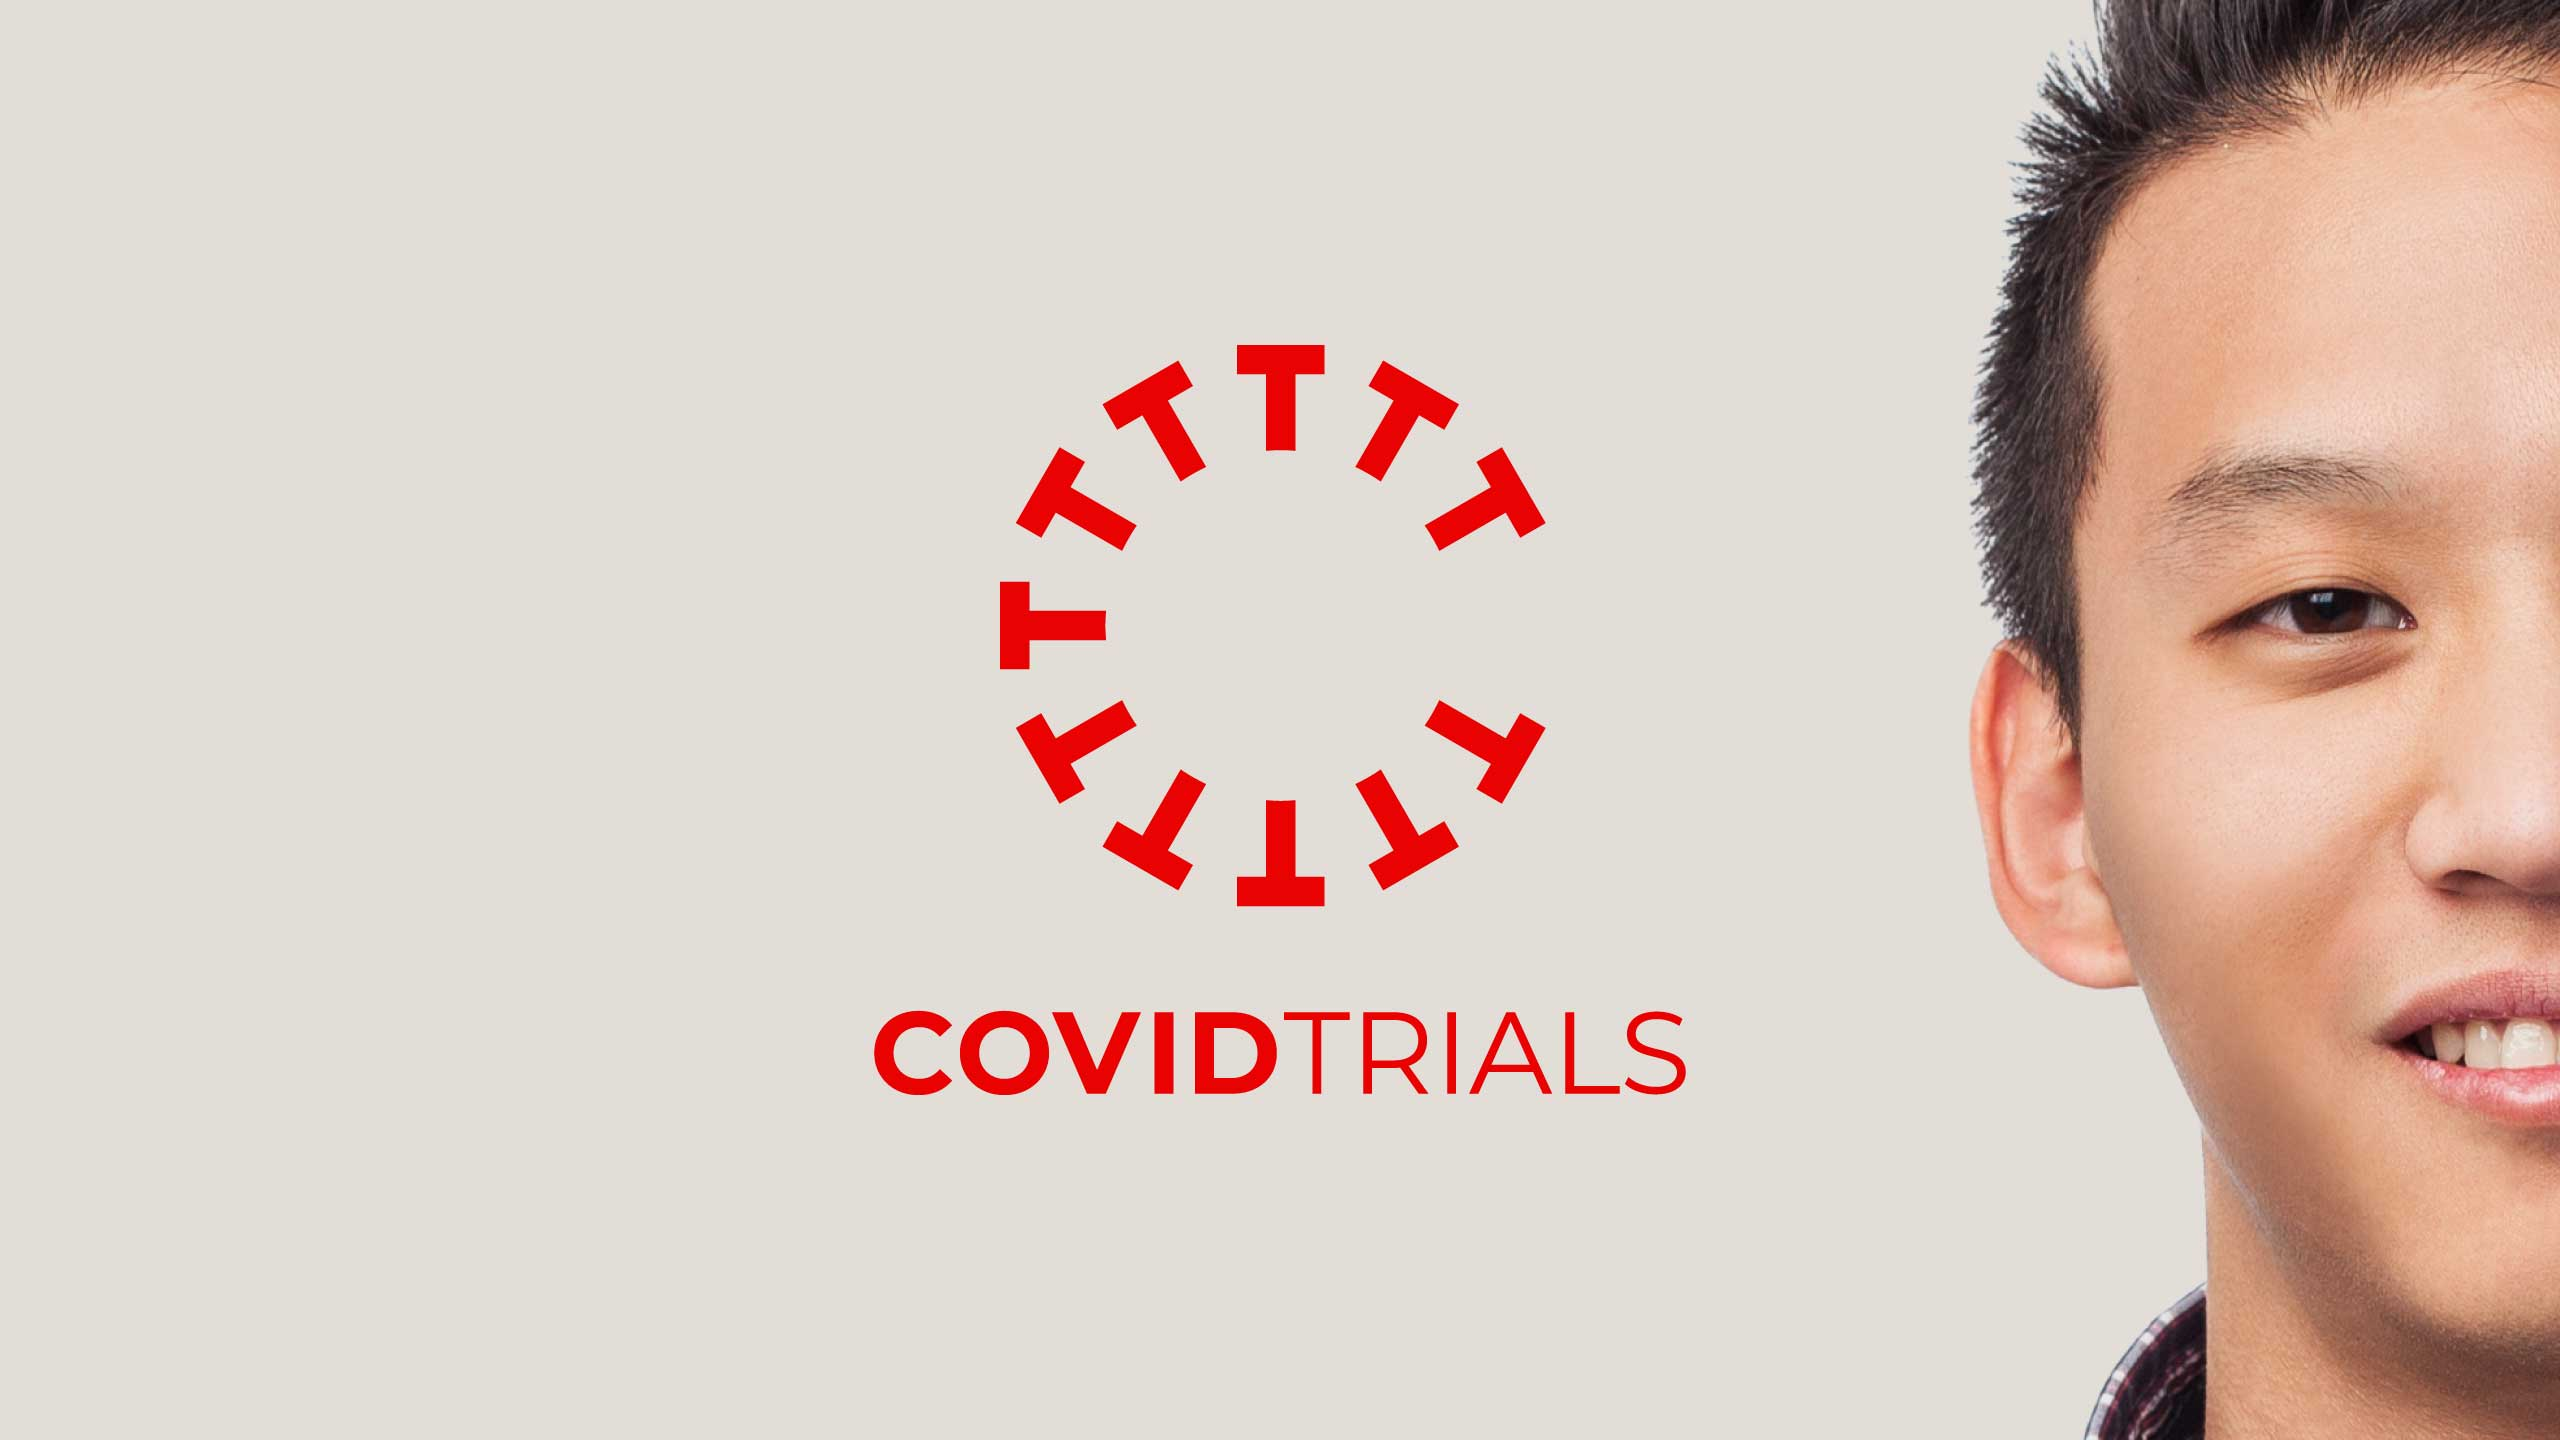 Covid trials logo